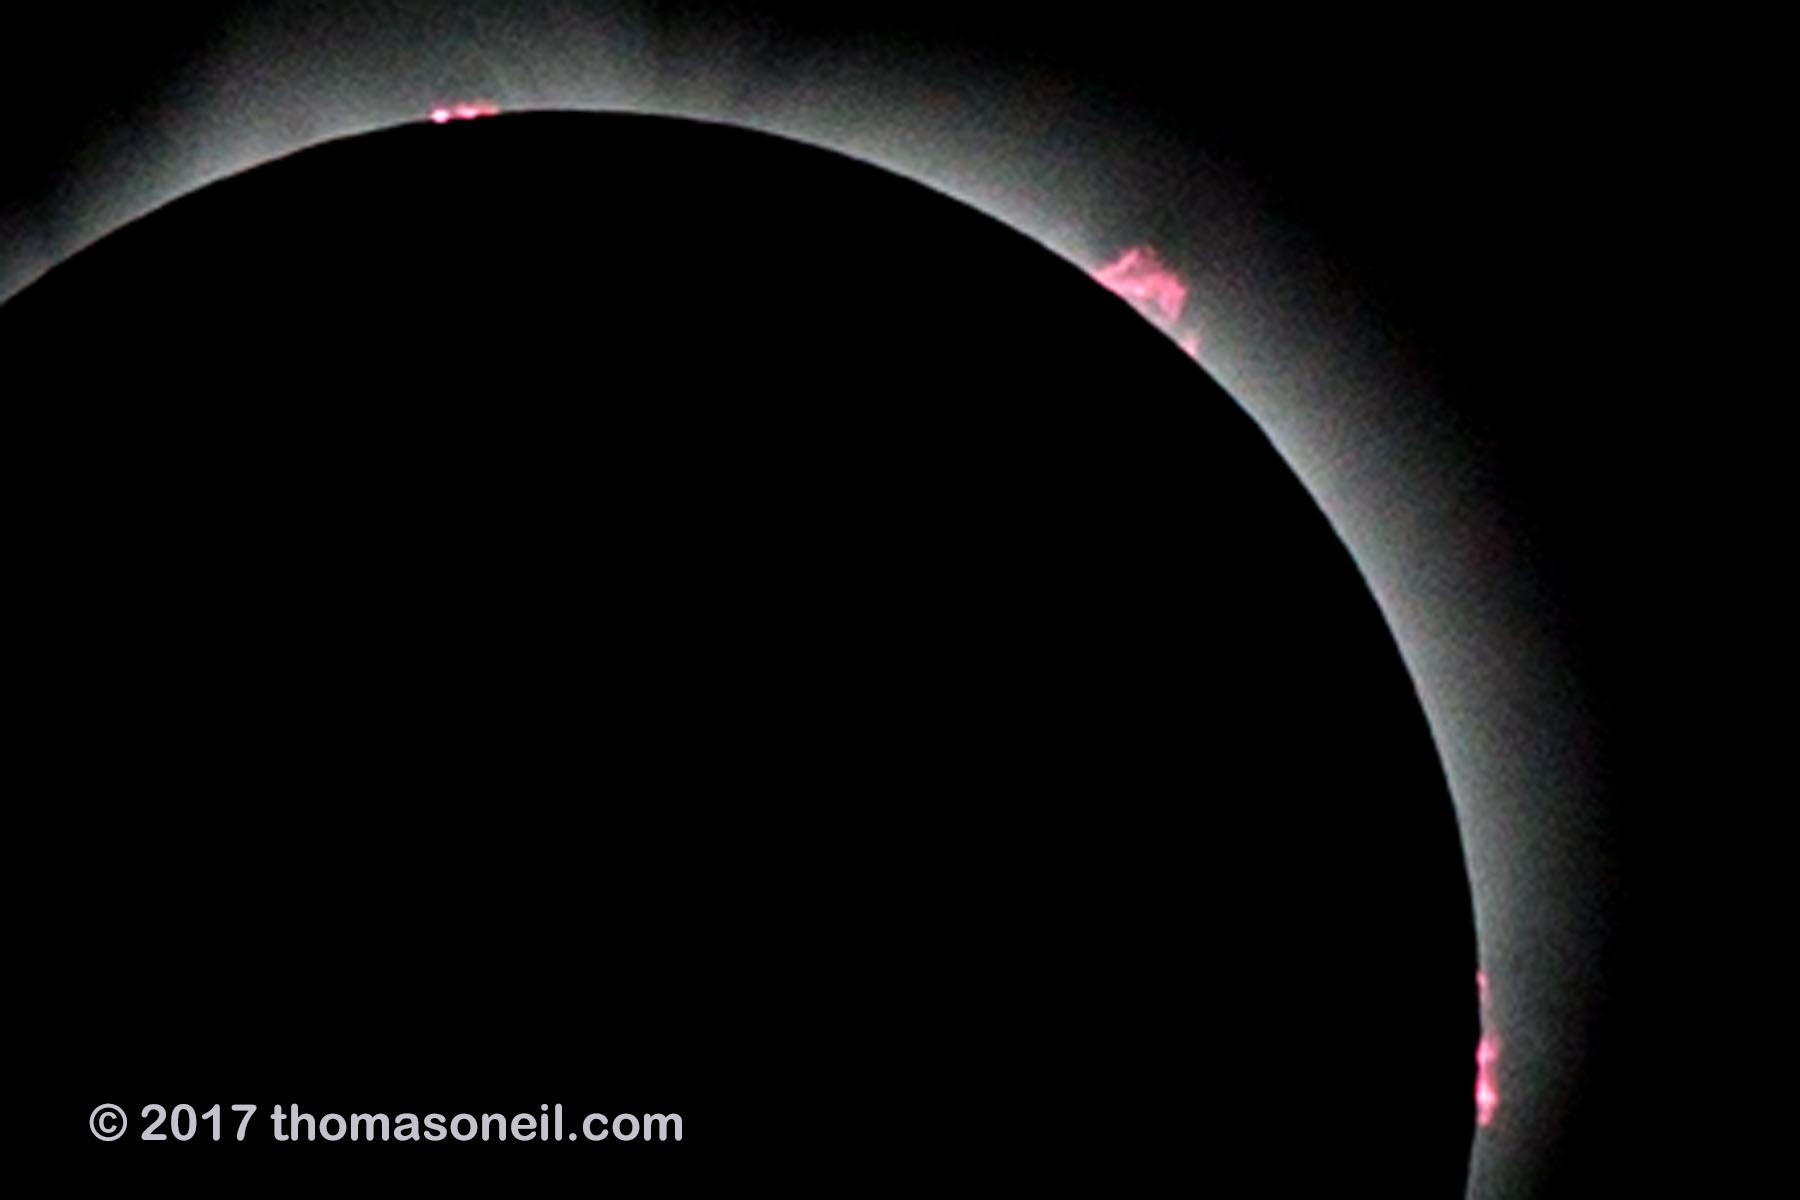 Solar eclipse, Aug. 21, 2017, a processed version of the previous image.  Very fast shutter speed (1/2500) reveals prominences rising from surface of the sun.  Click for next photo.